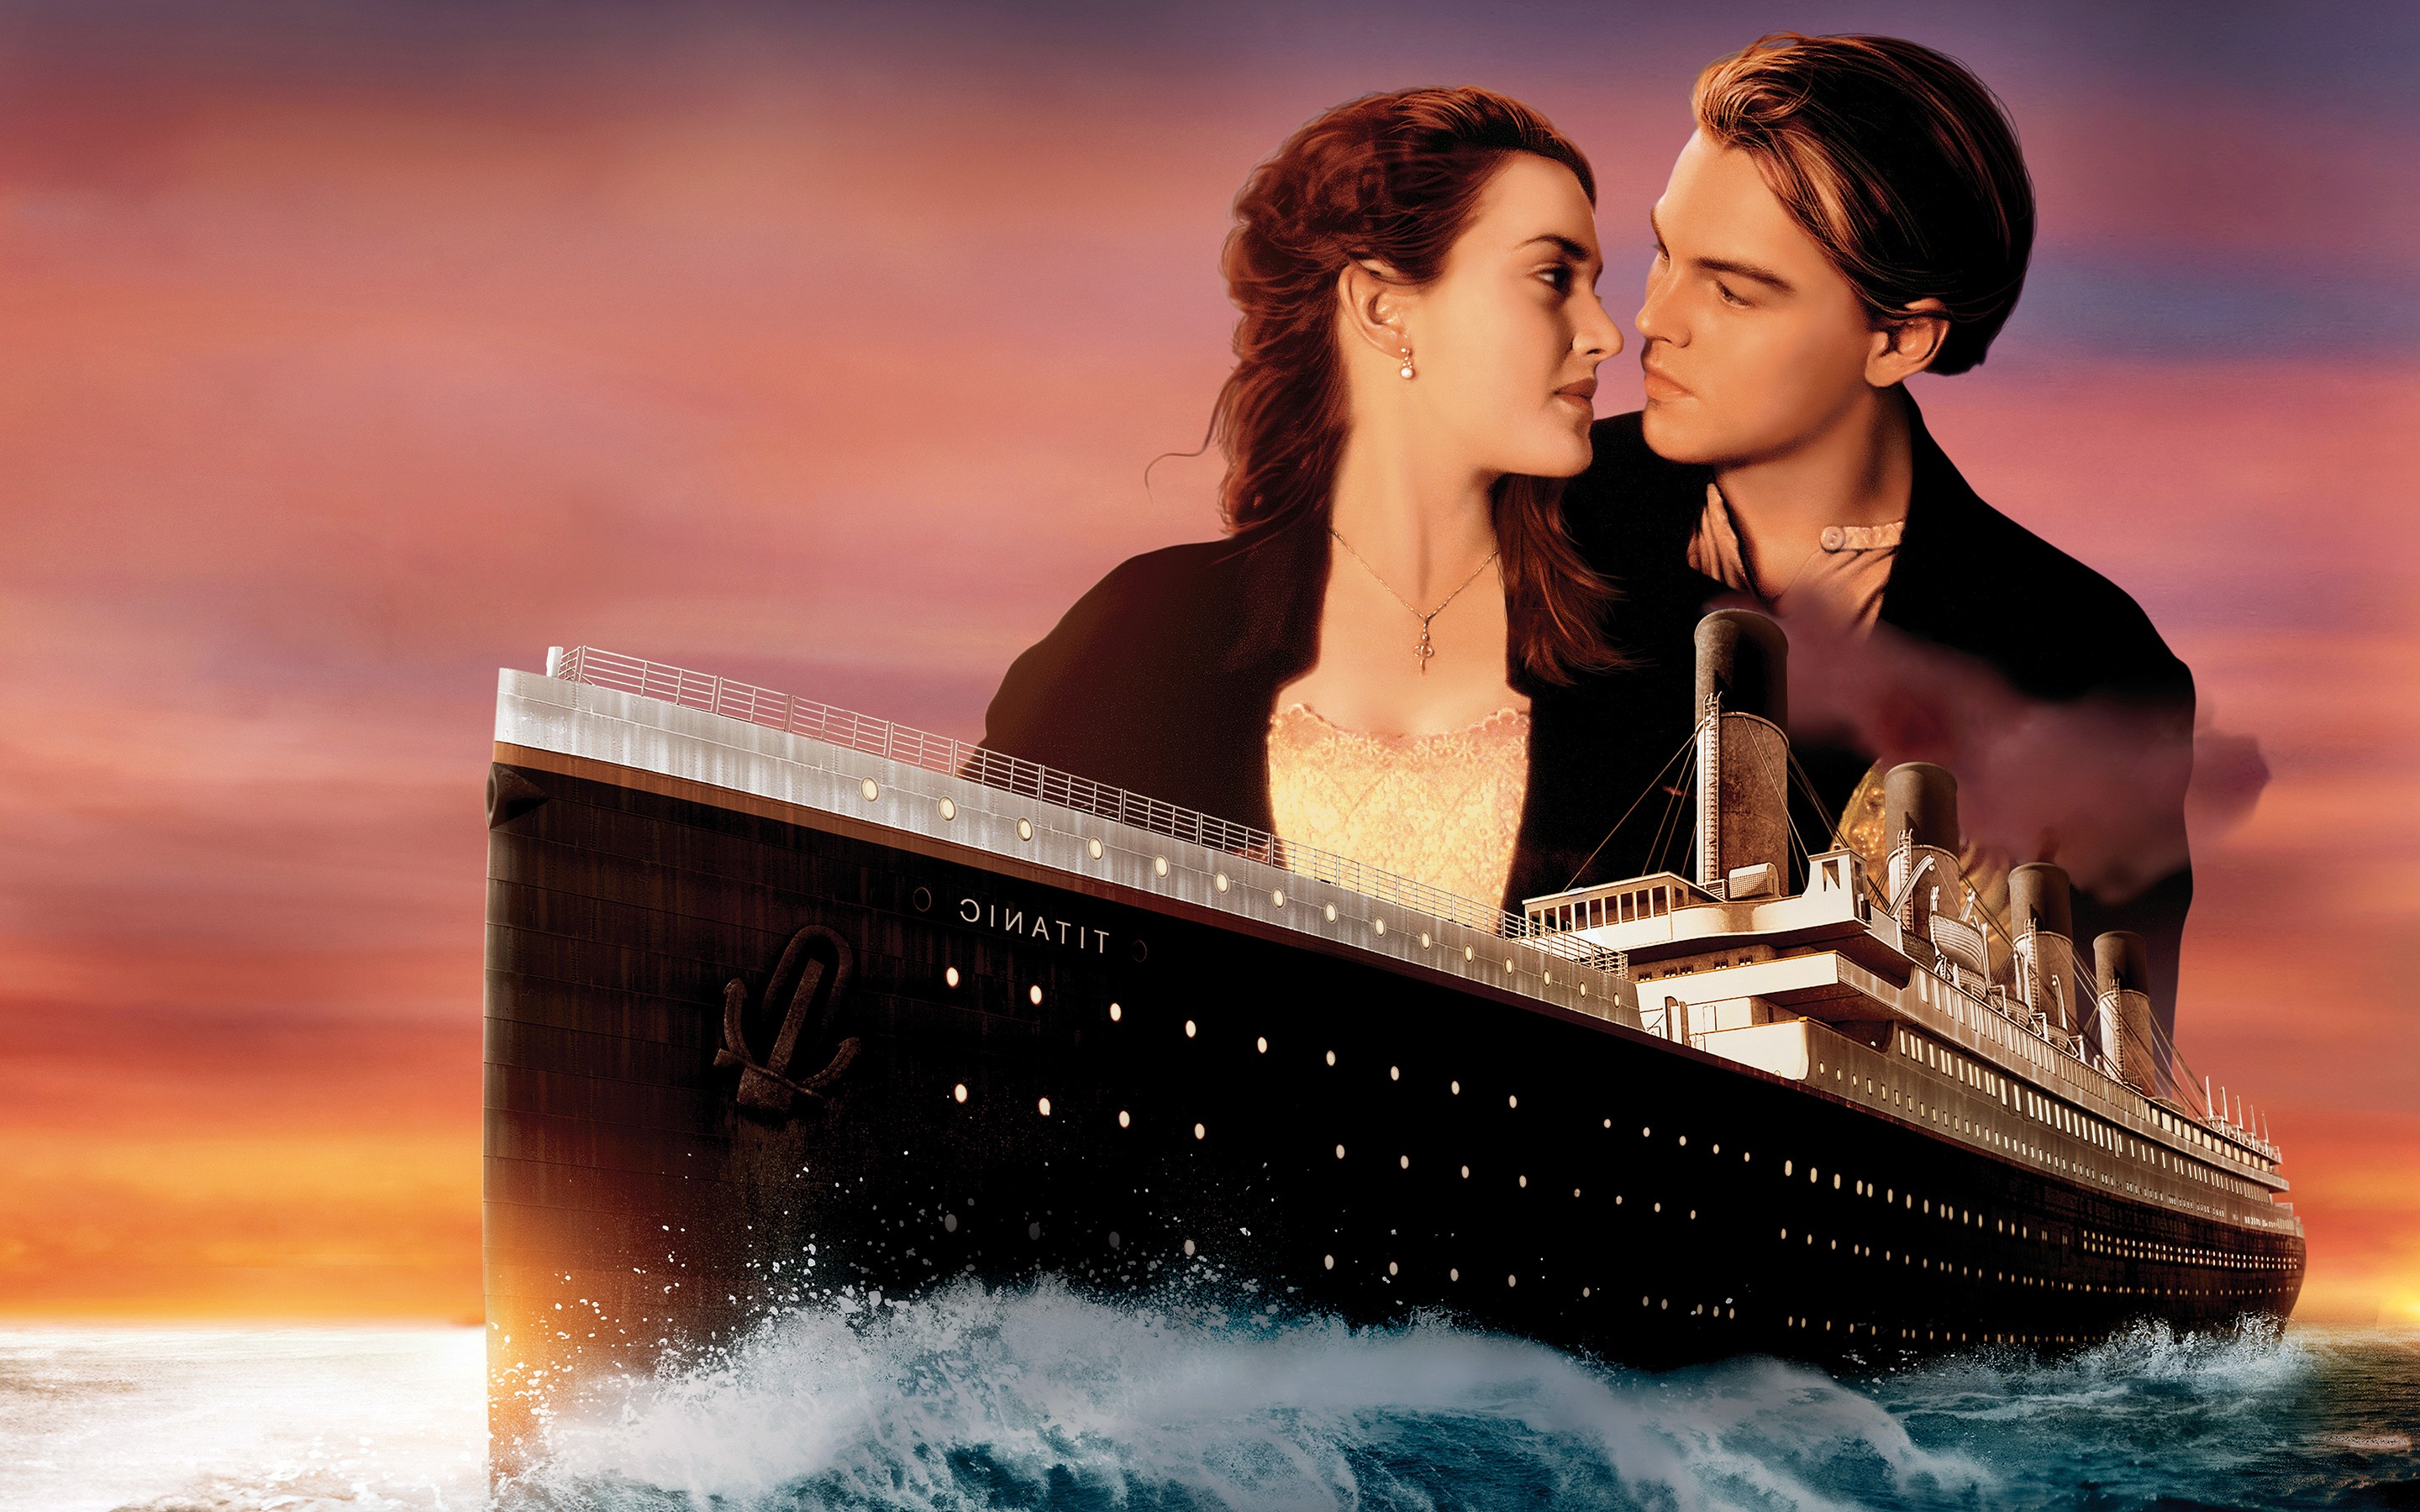 Titanic Movie Full HD, HD Movies, 4k Wallpapers, Images, Backgrounds, Photos and Pictures